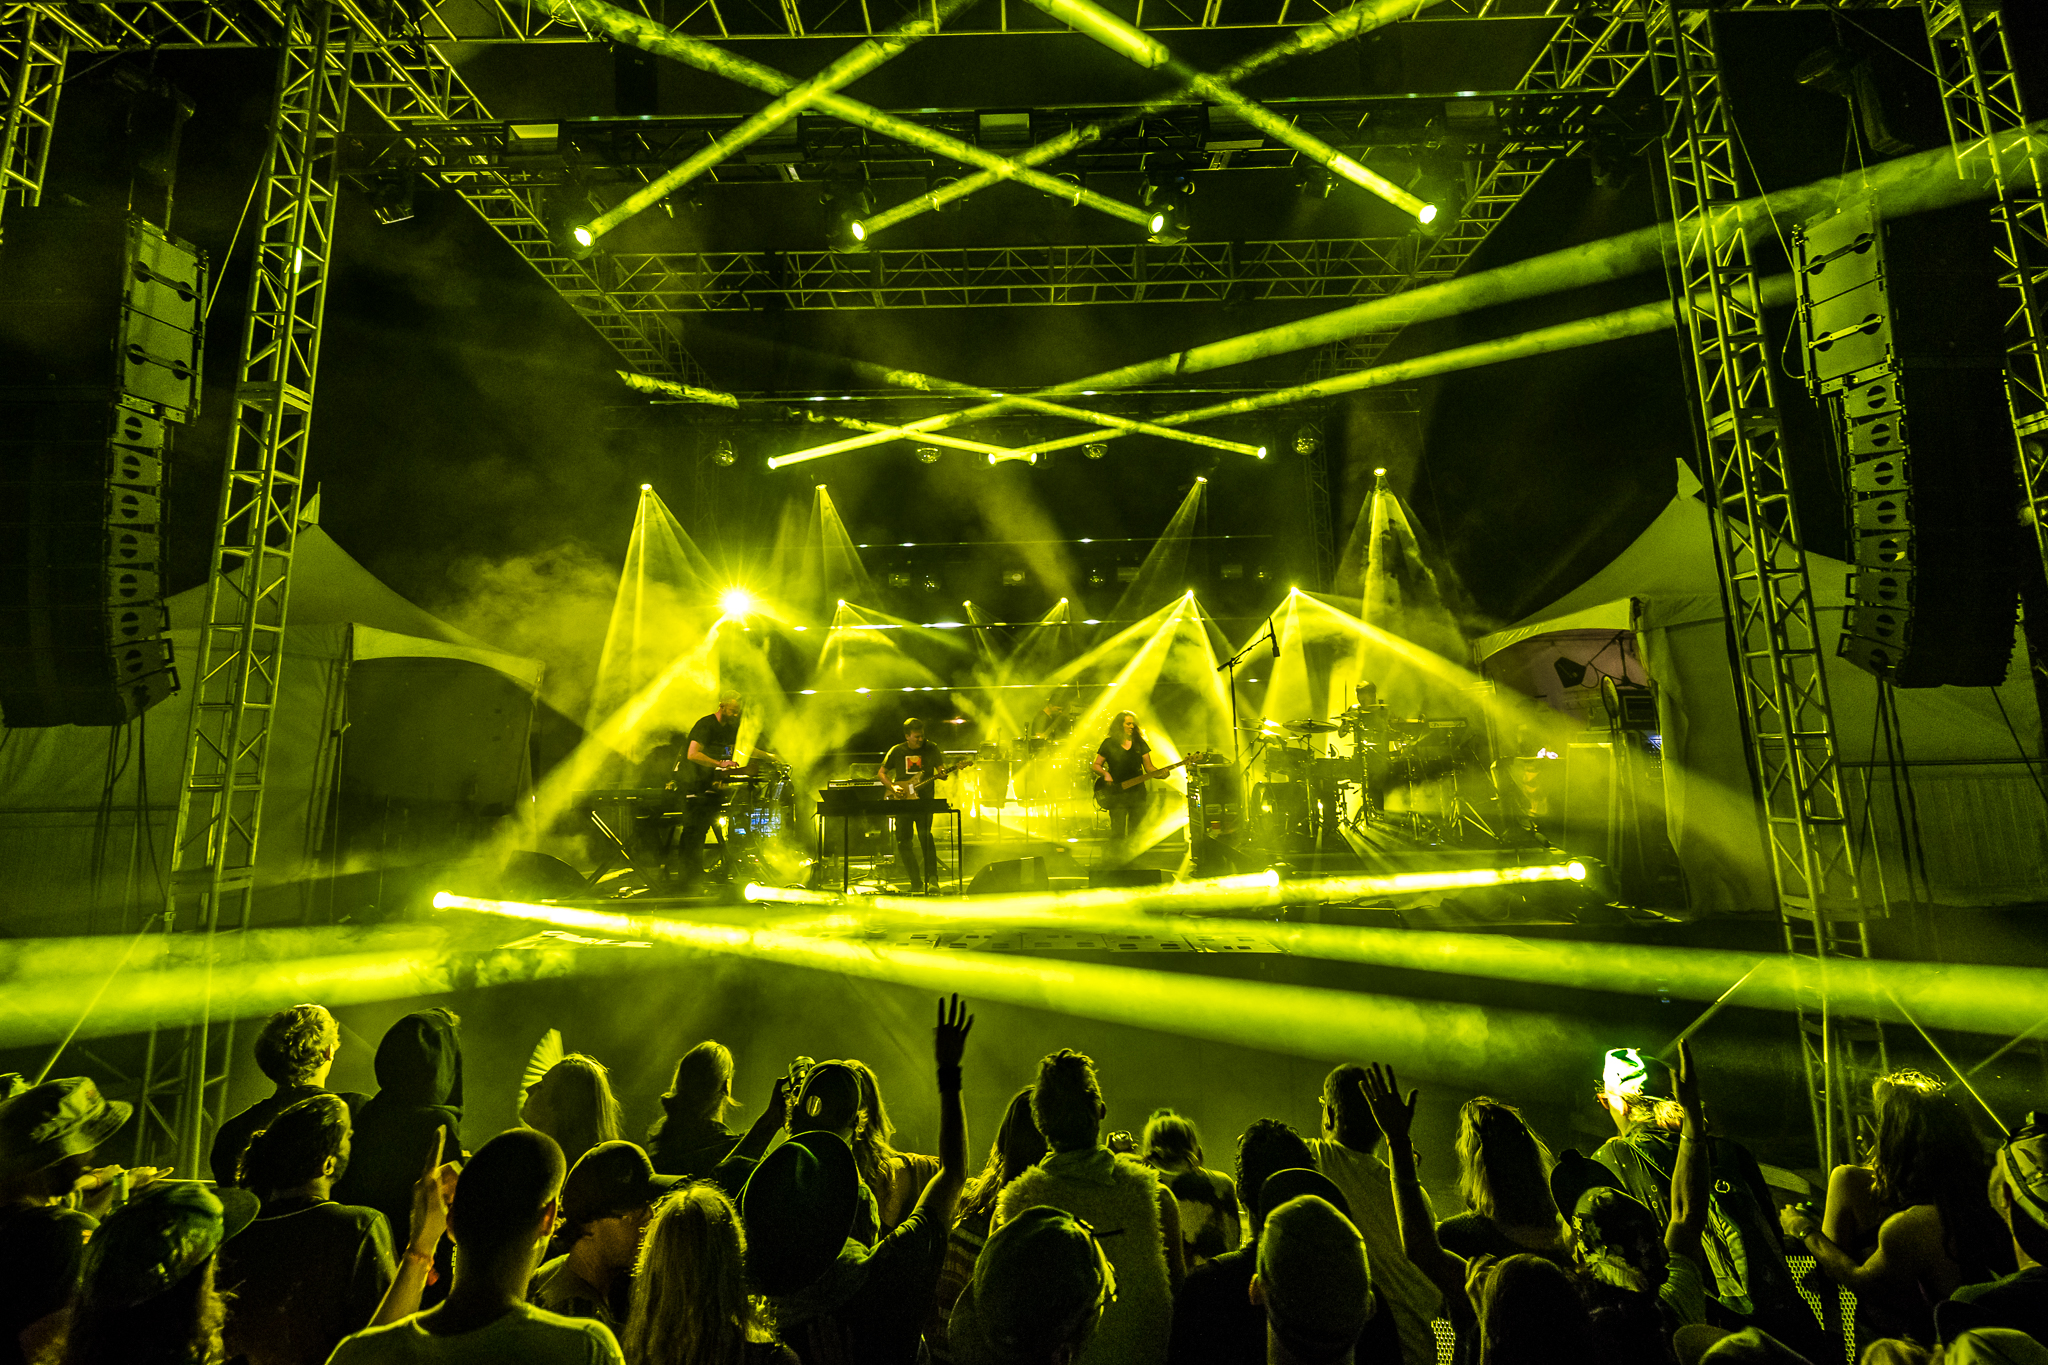 STS9 Announces Lineup for Wave Spell Live